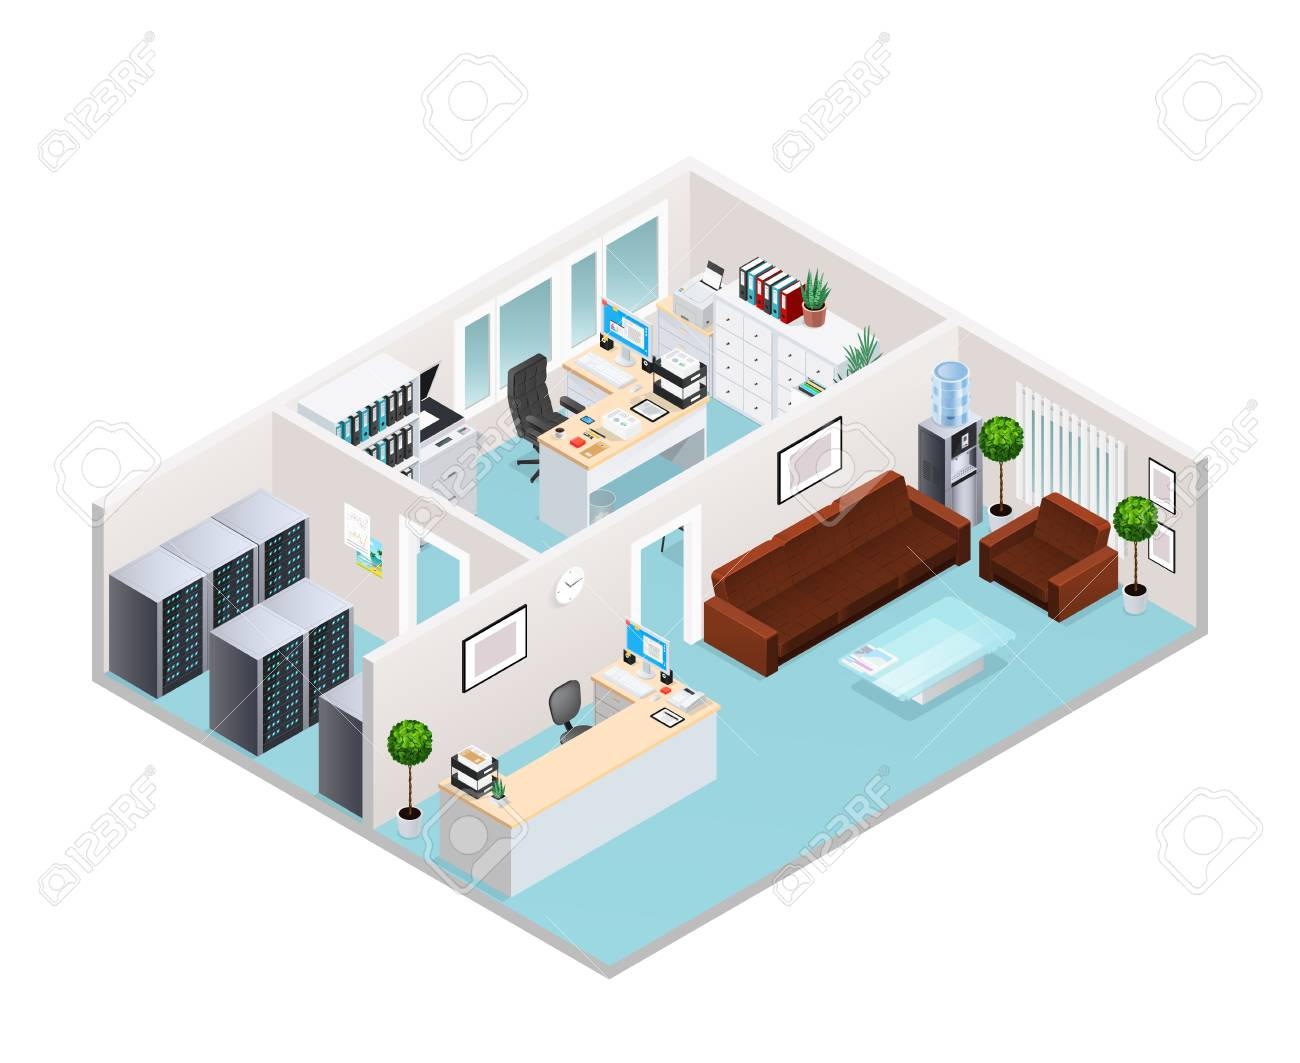 Office Interior Isometric Design Including Waiting Area With